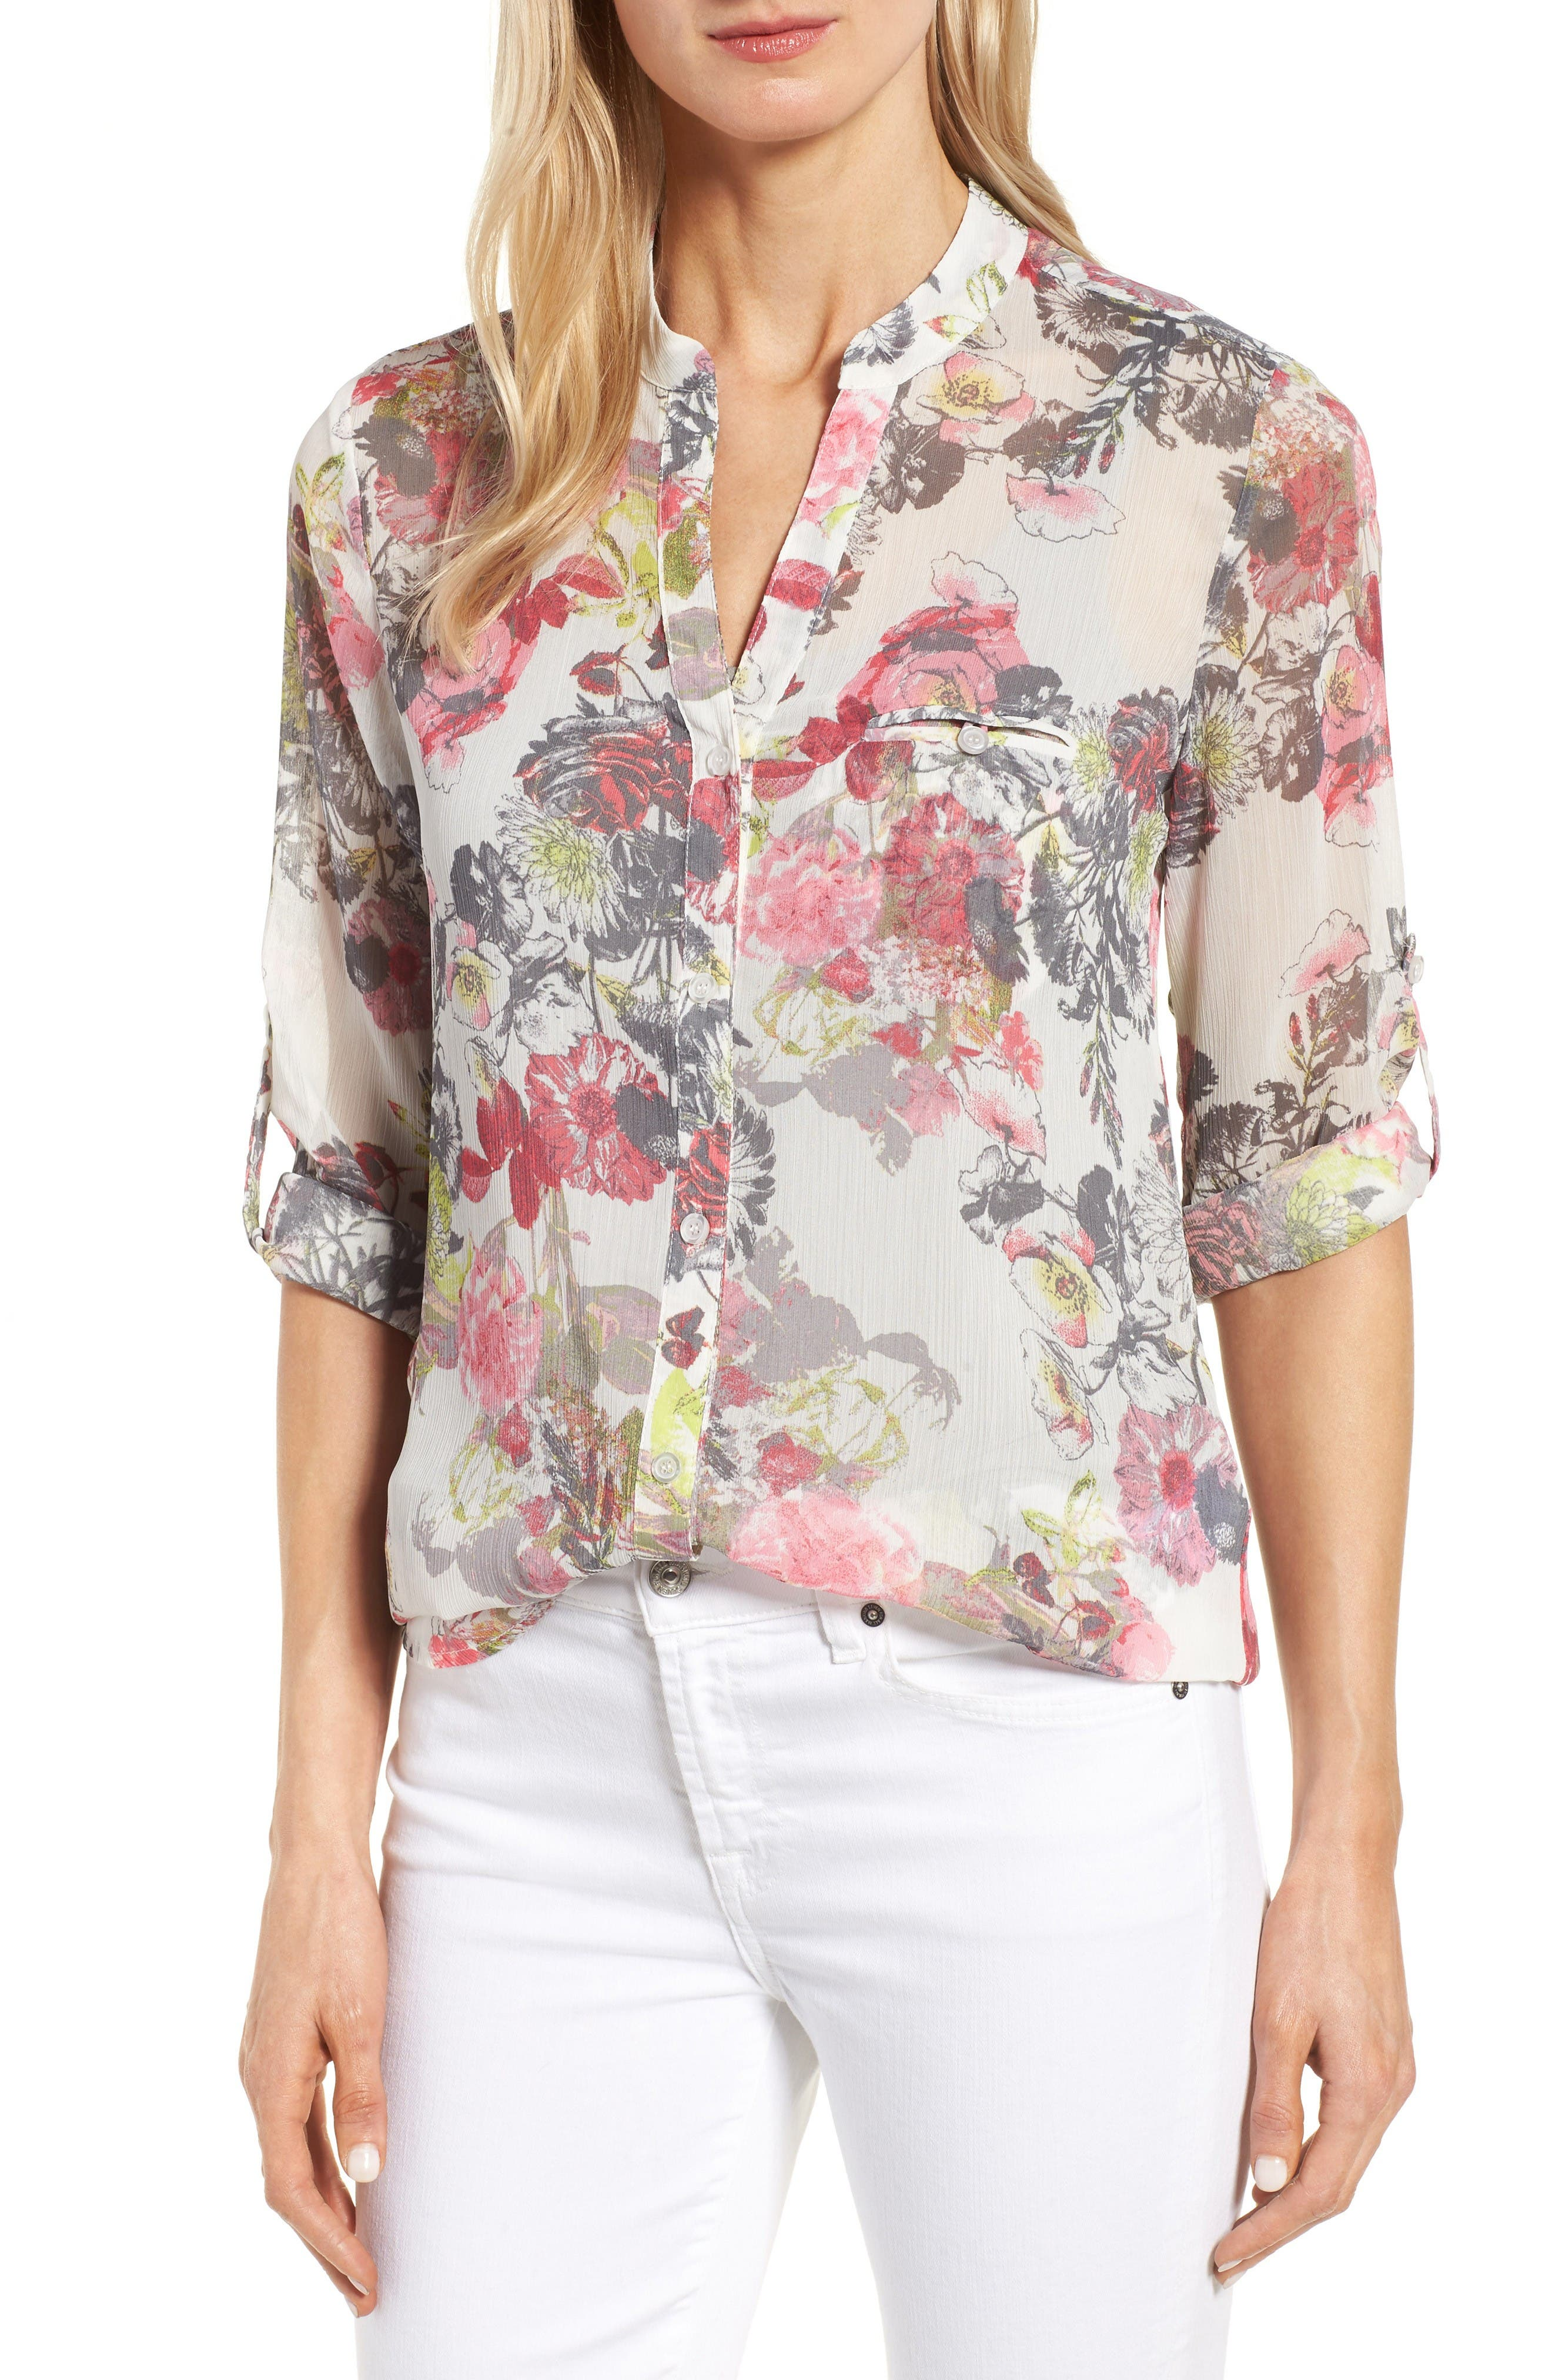 Alternate Image 1 Selected - KUT from the Kloth Floral Print Blouse